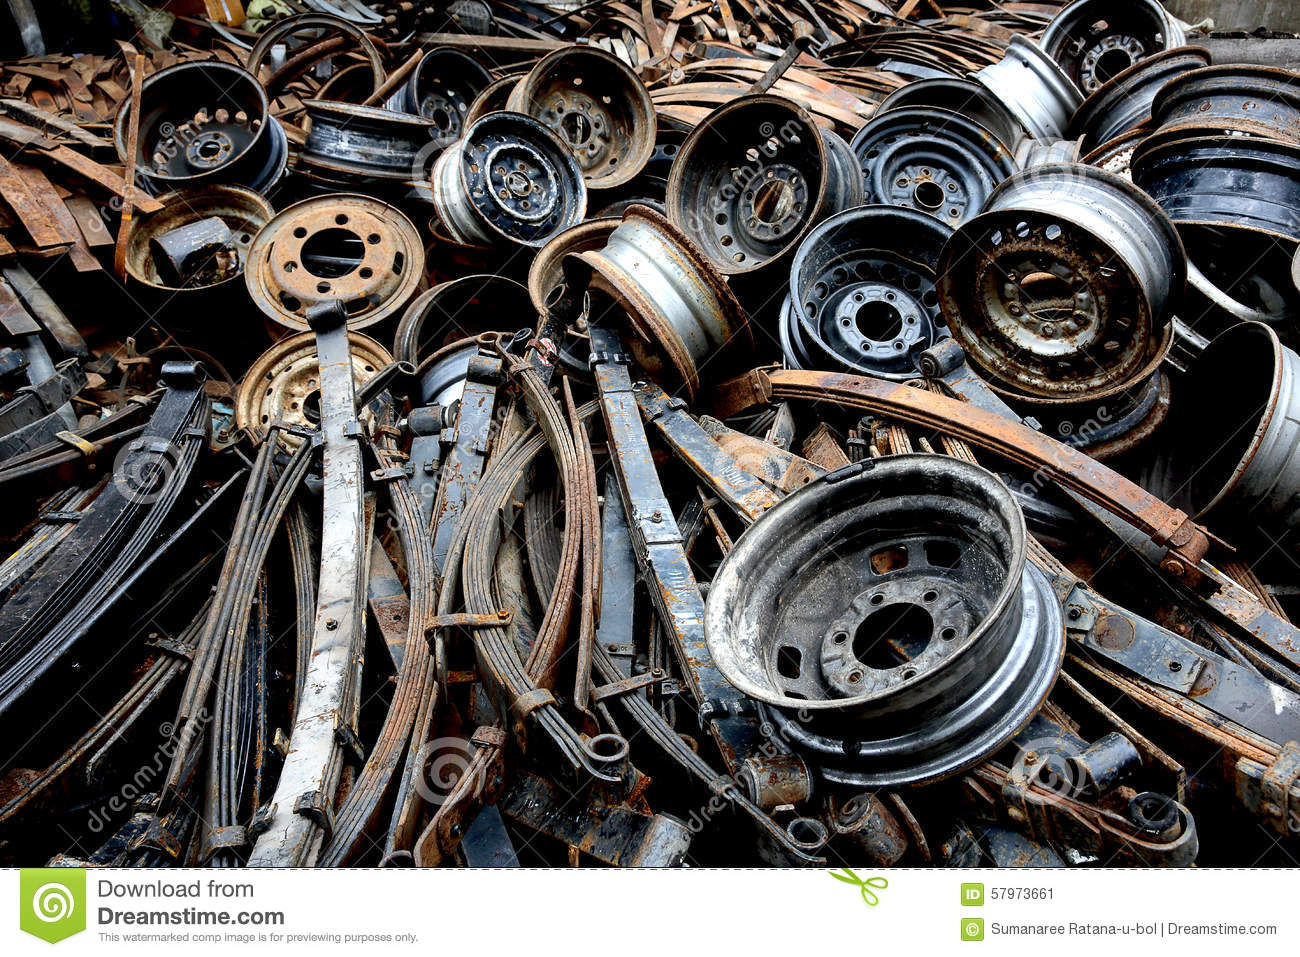 Old spare parts stock image. Image of auto, steel, broken - 57973661